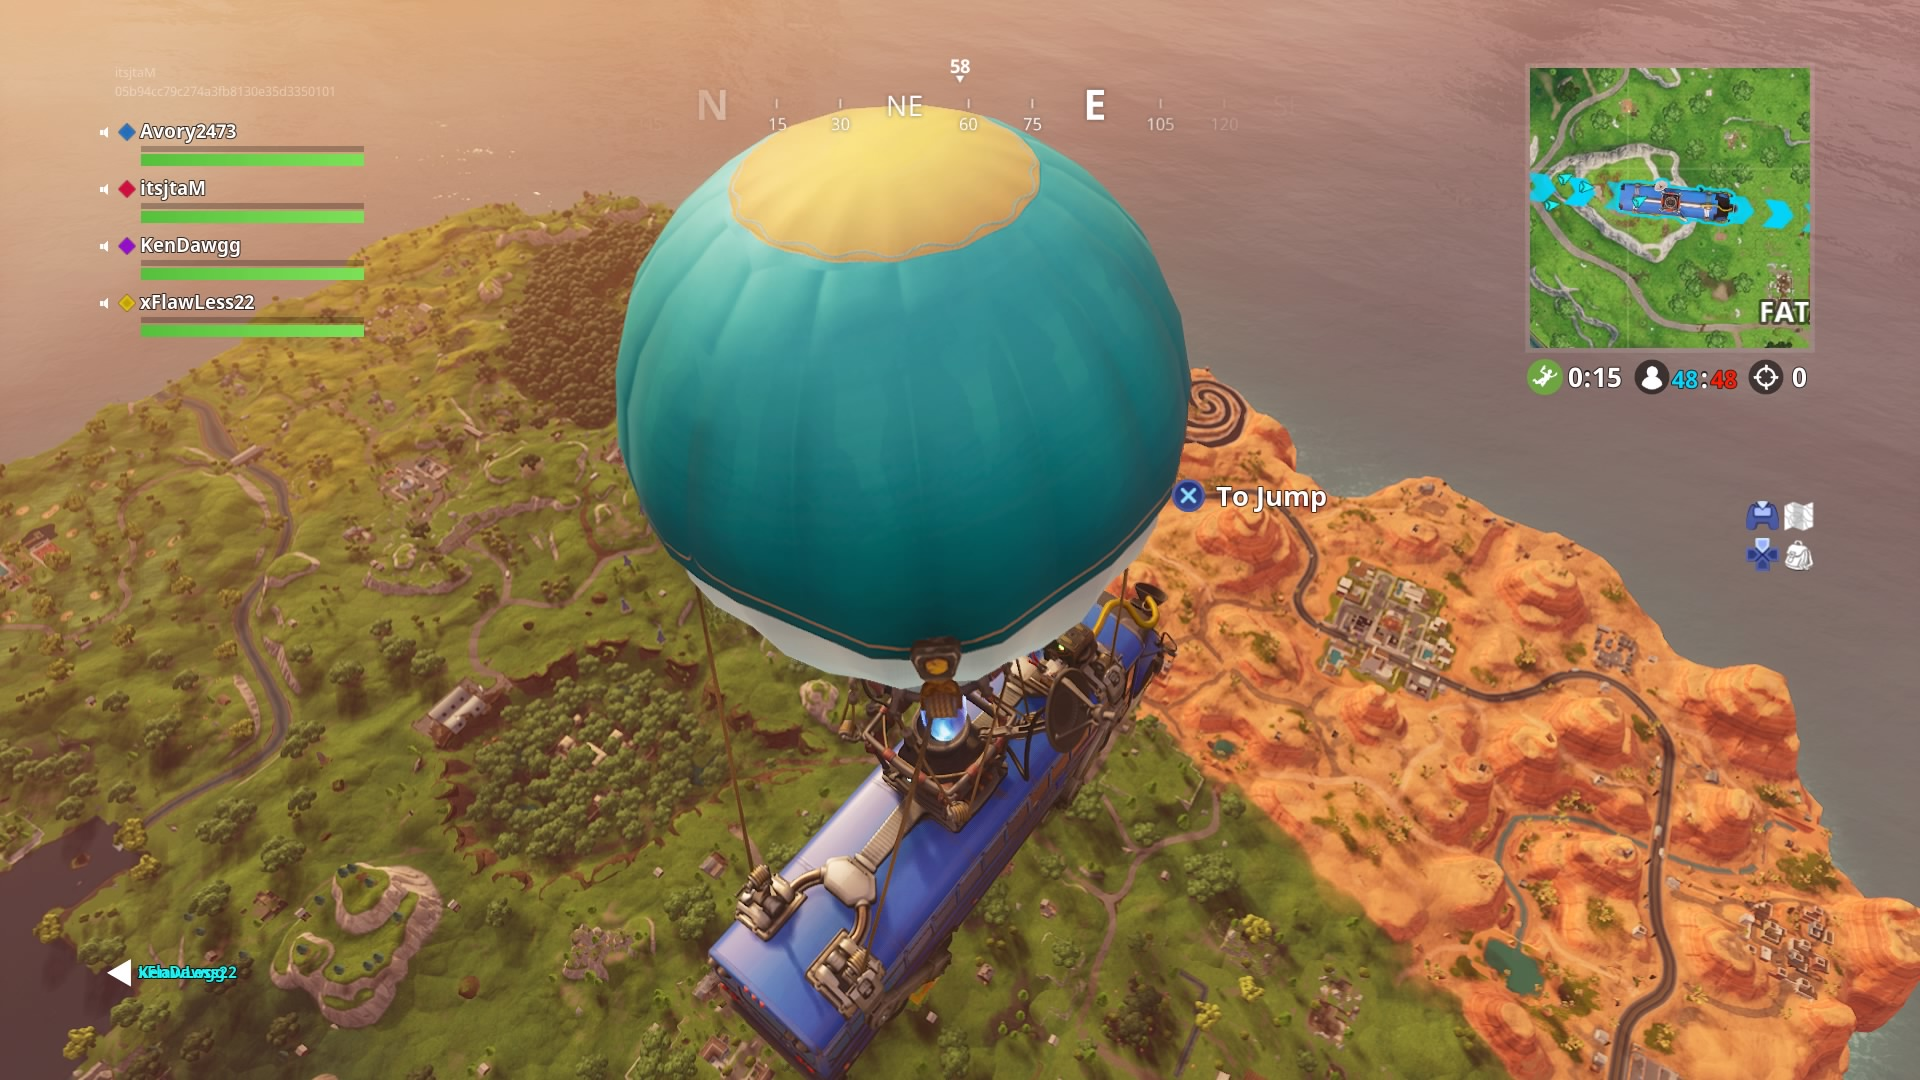 Free Download Fortnite Season 5 Map Wallpaper Background 64298 1920x1080px 1920x1080 For Your Desktop Mobile Tablet Explore 31 Fortnite Map Wallpapers Fortnite Map Wallpapers Map Wallpapers Map Wallpaper